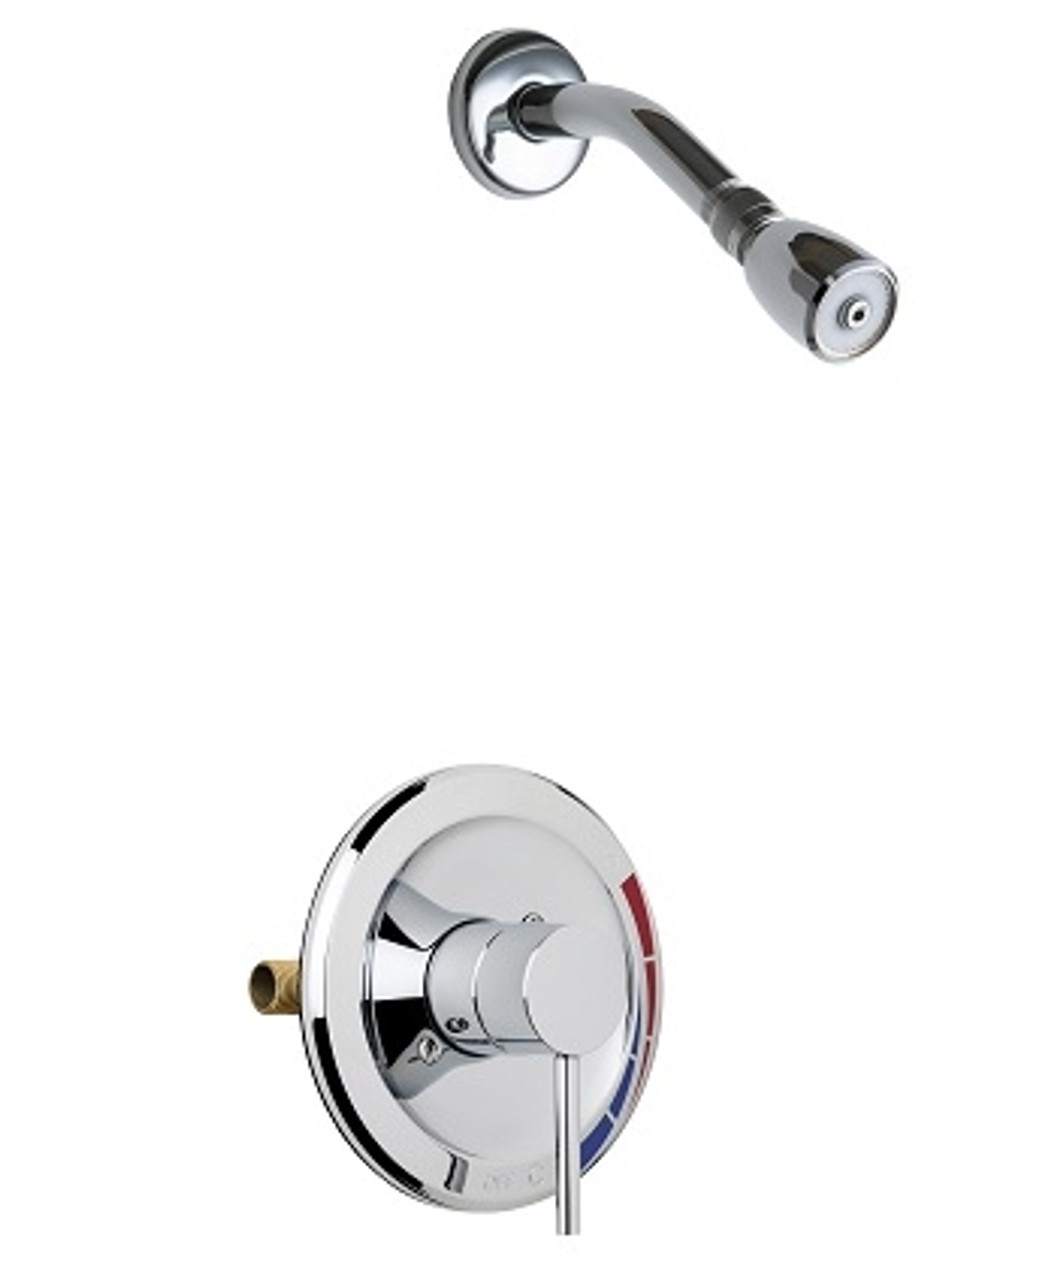 Chicago Faucets Sh Pb1 02 000 Pressure Balancing Tub And Shower Valve With Shower Head 2 5 Gpm